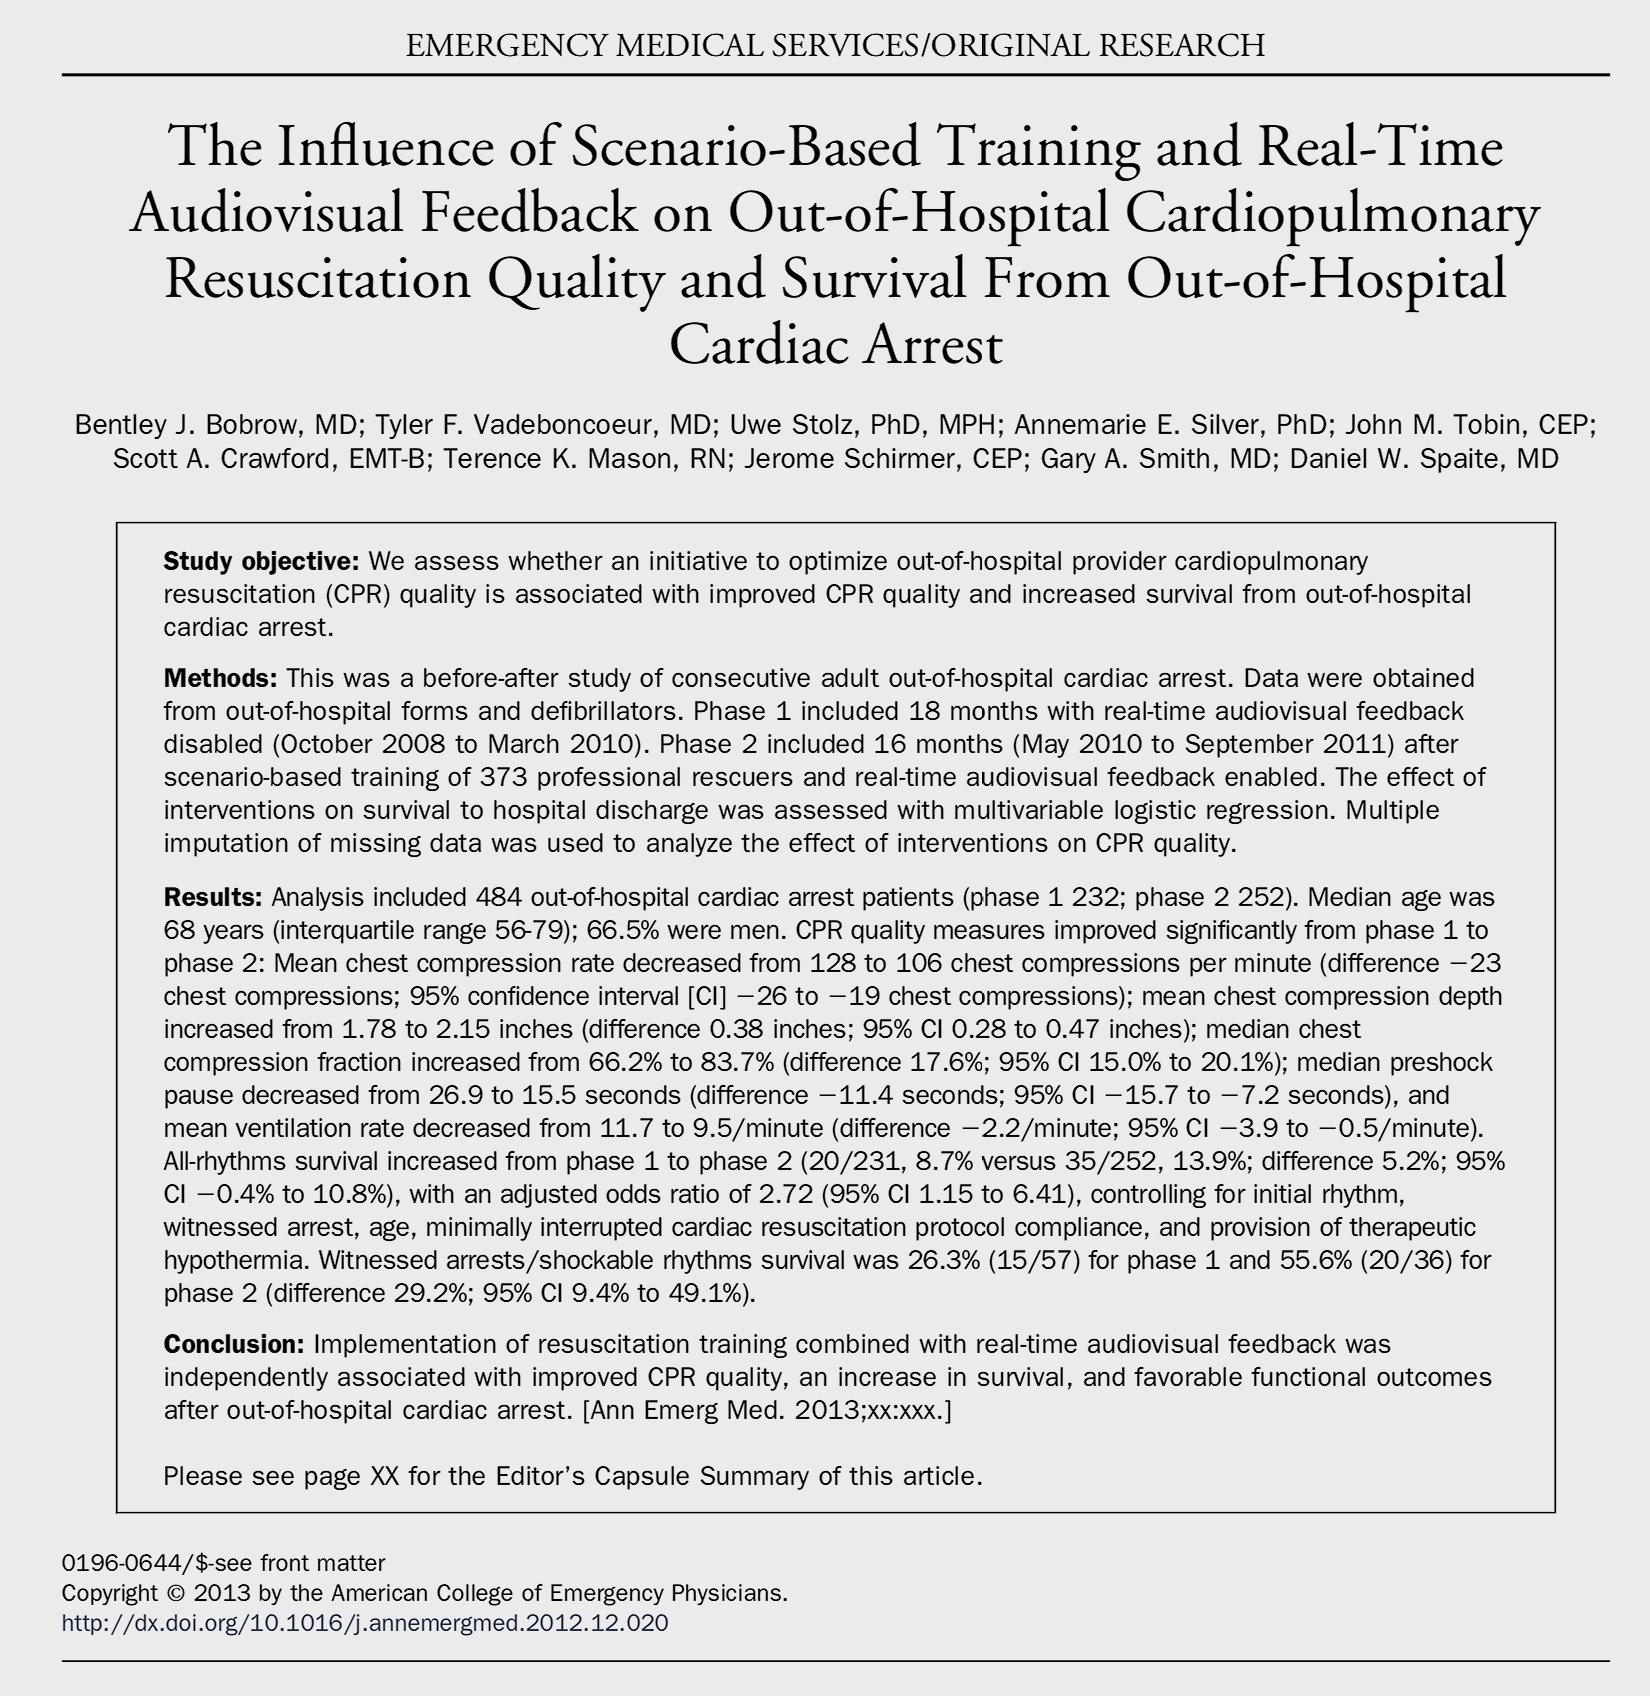 FOR WITNESSED, SHOCKABLE RHYTHMS: PATIENT SURVIVAL WITHOUT REAL-TIME CPR FEEDBACK 26% / WITH REAL-TIME CPR FEEDBACK 56%